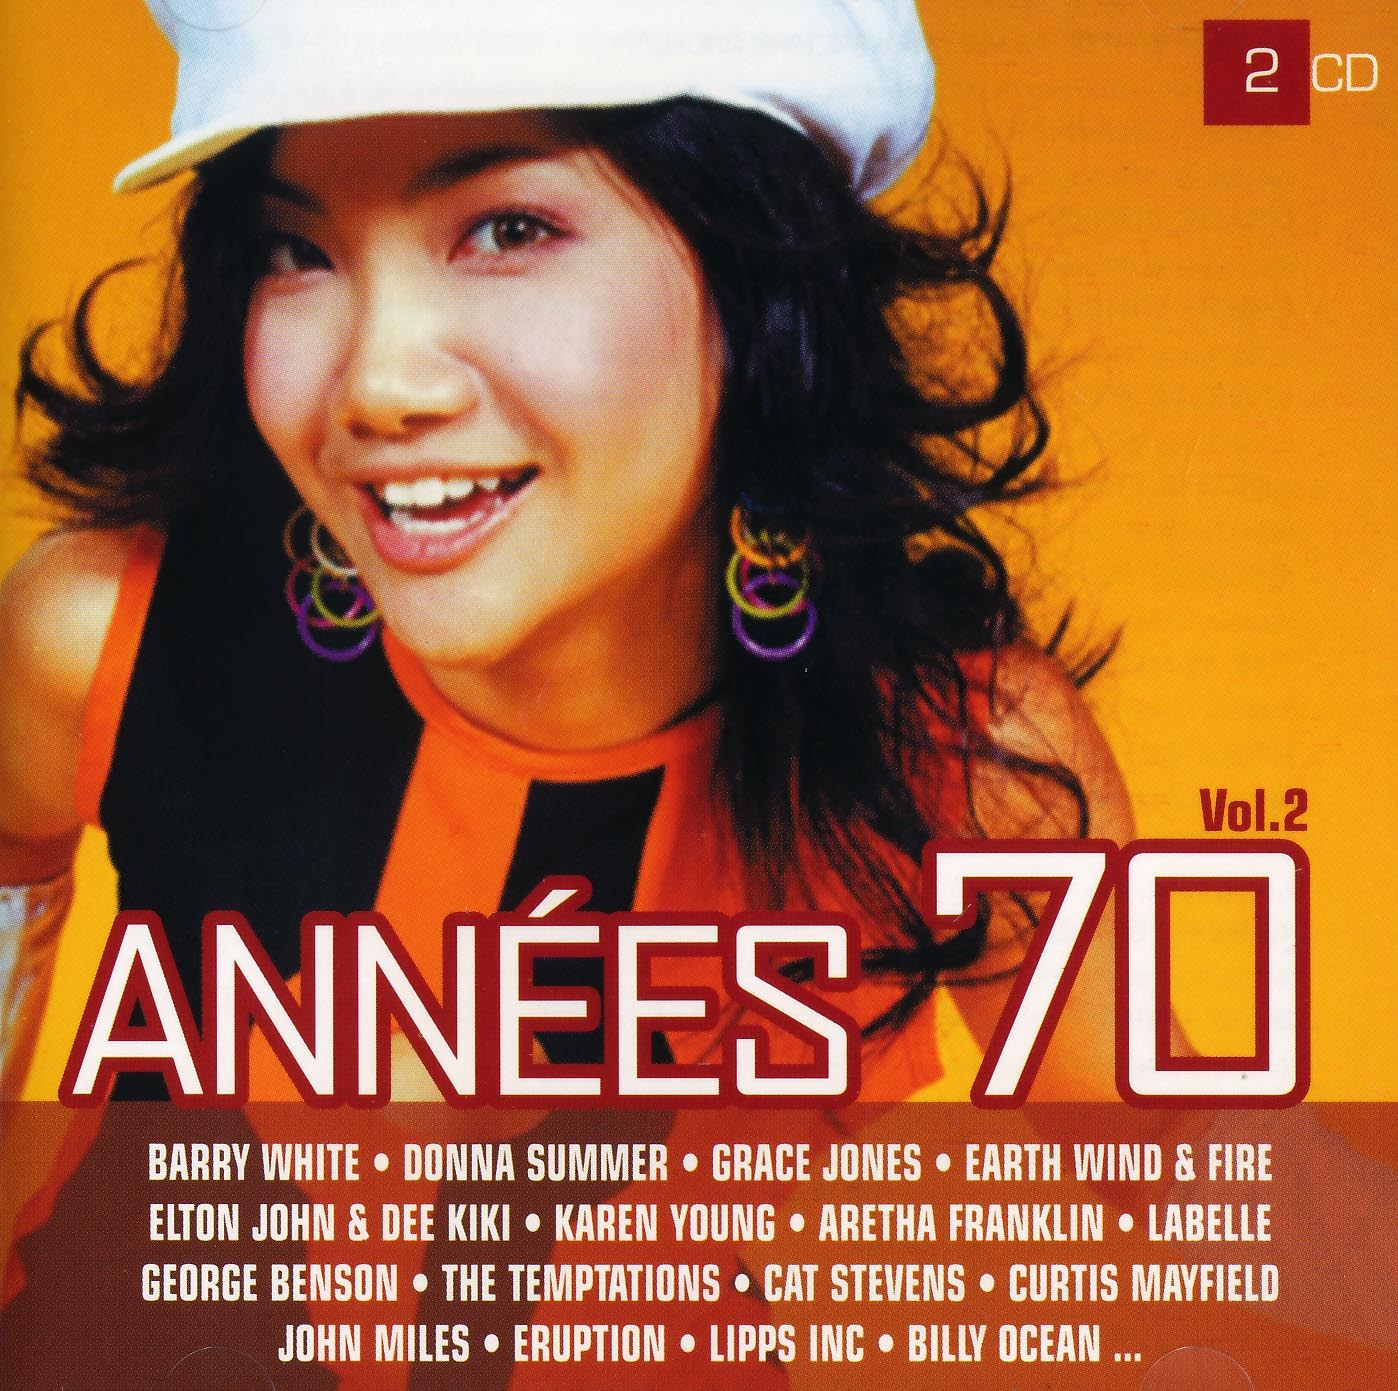 ANNEES 70 VOL2 - 2 CD-COLLECTION TWOGETHER